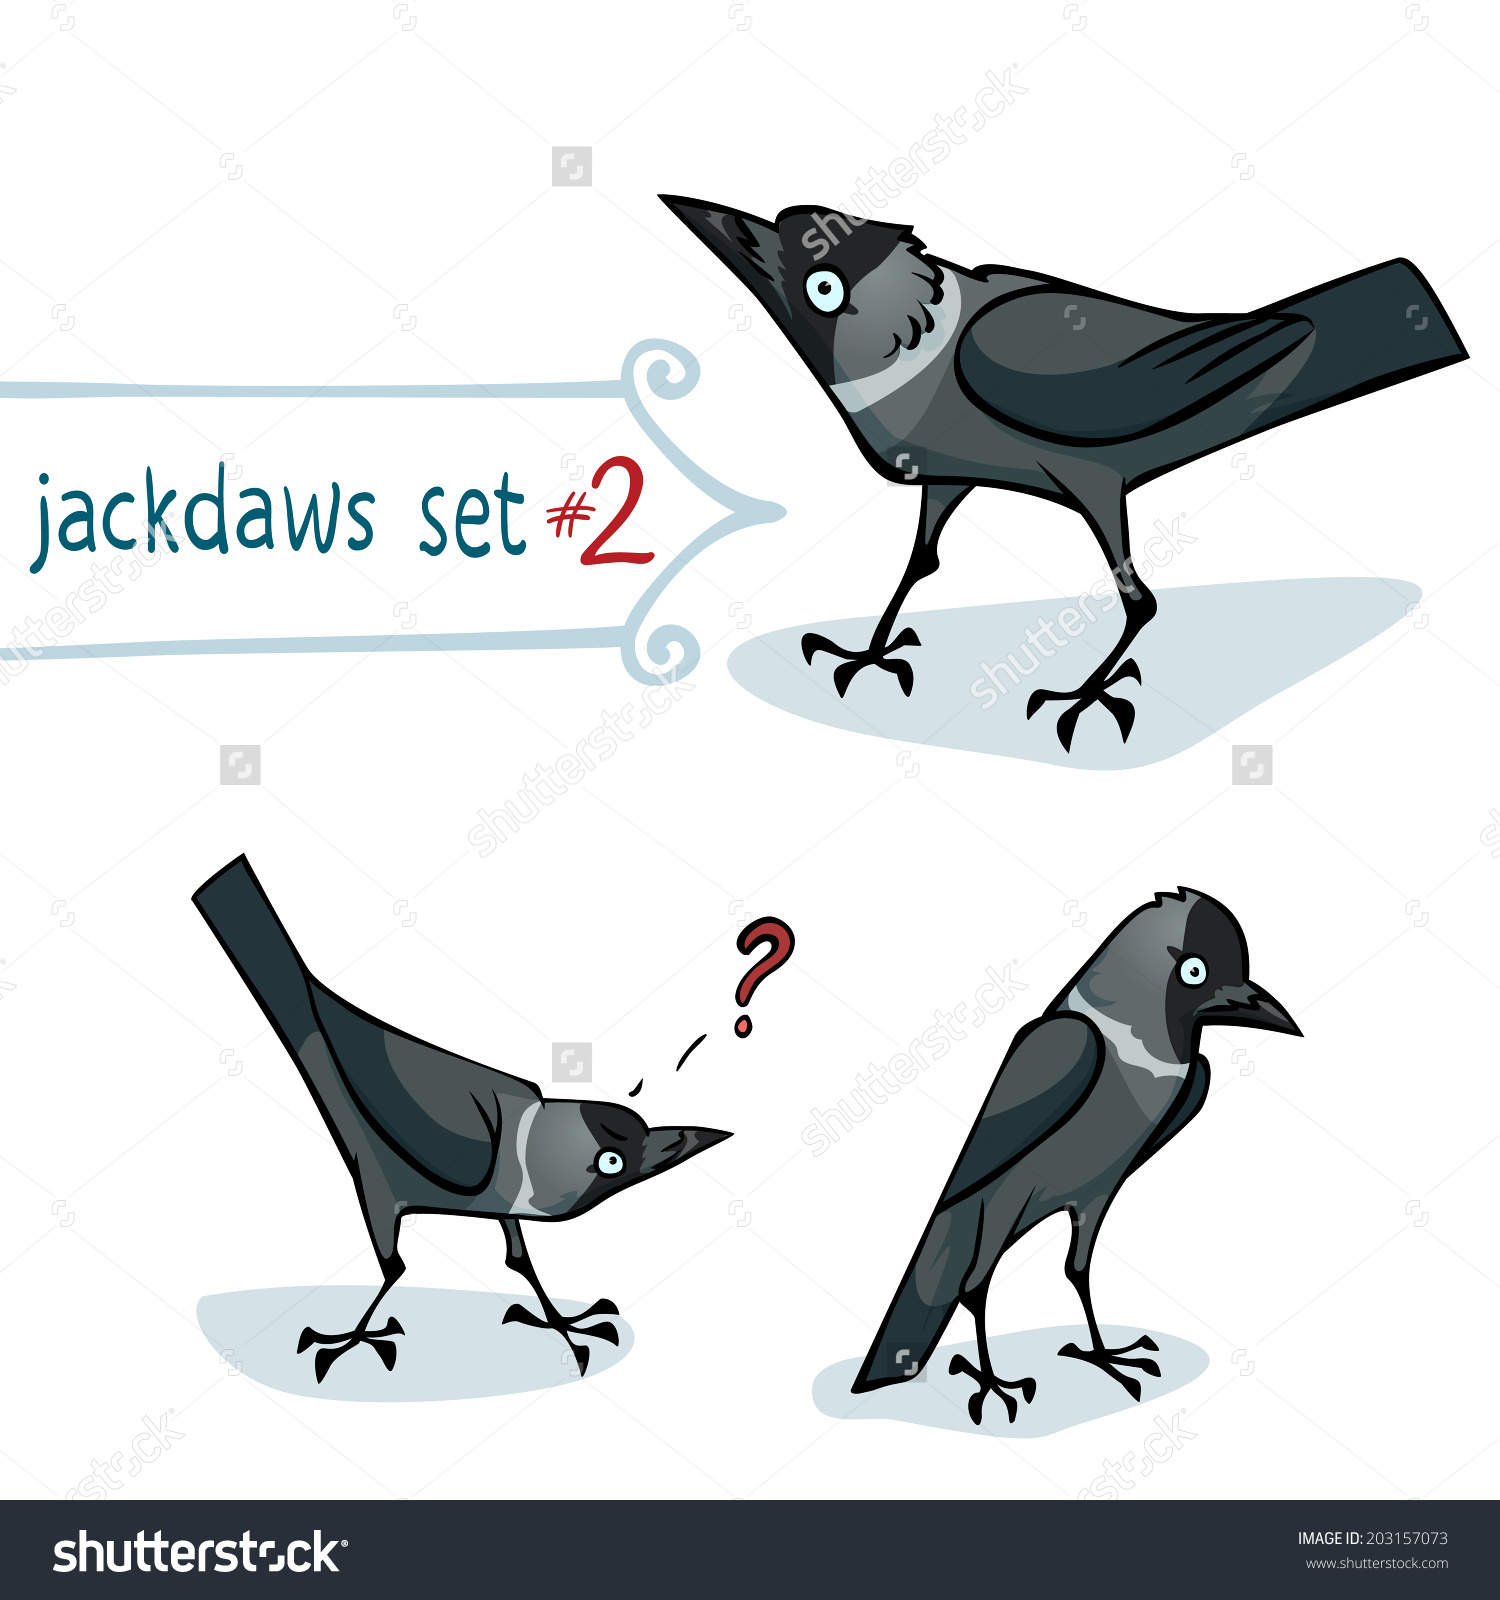 Western Jackdaw clipart #1, Download drawings